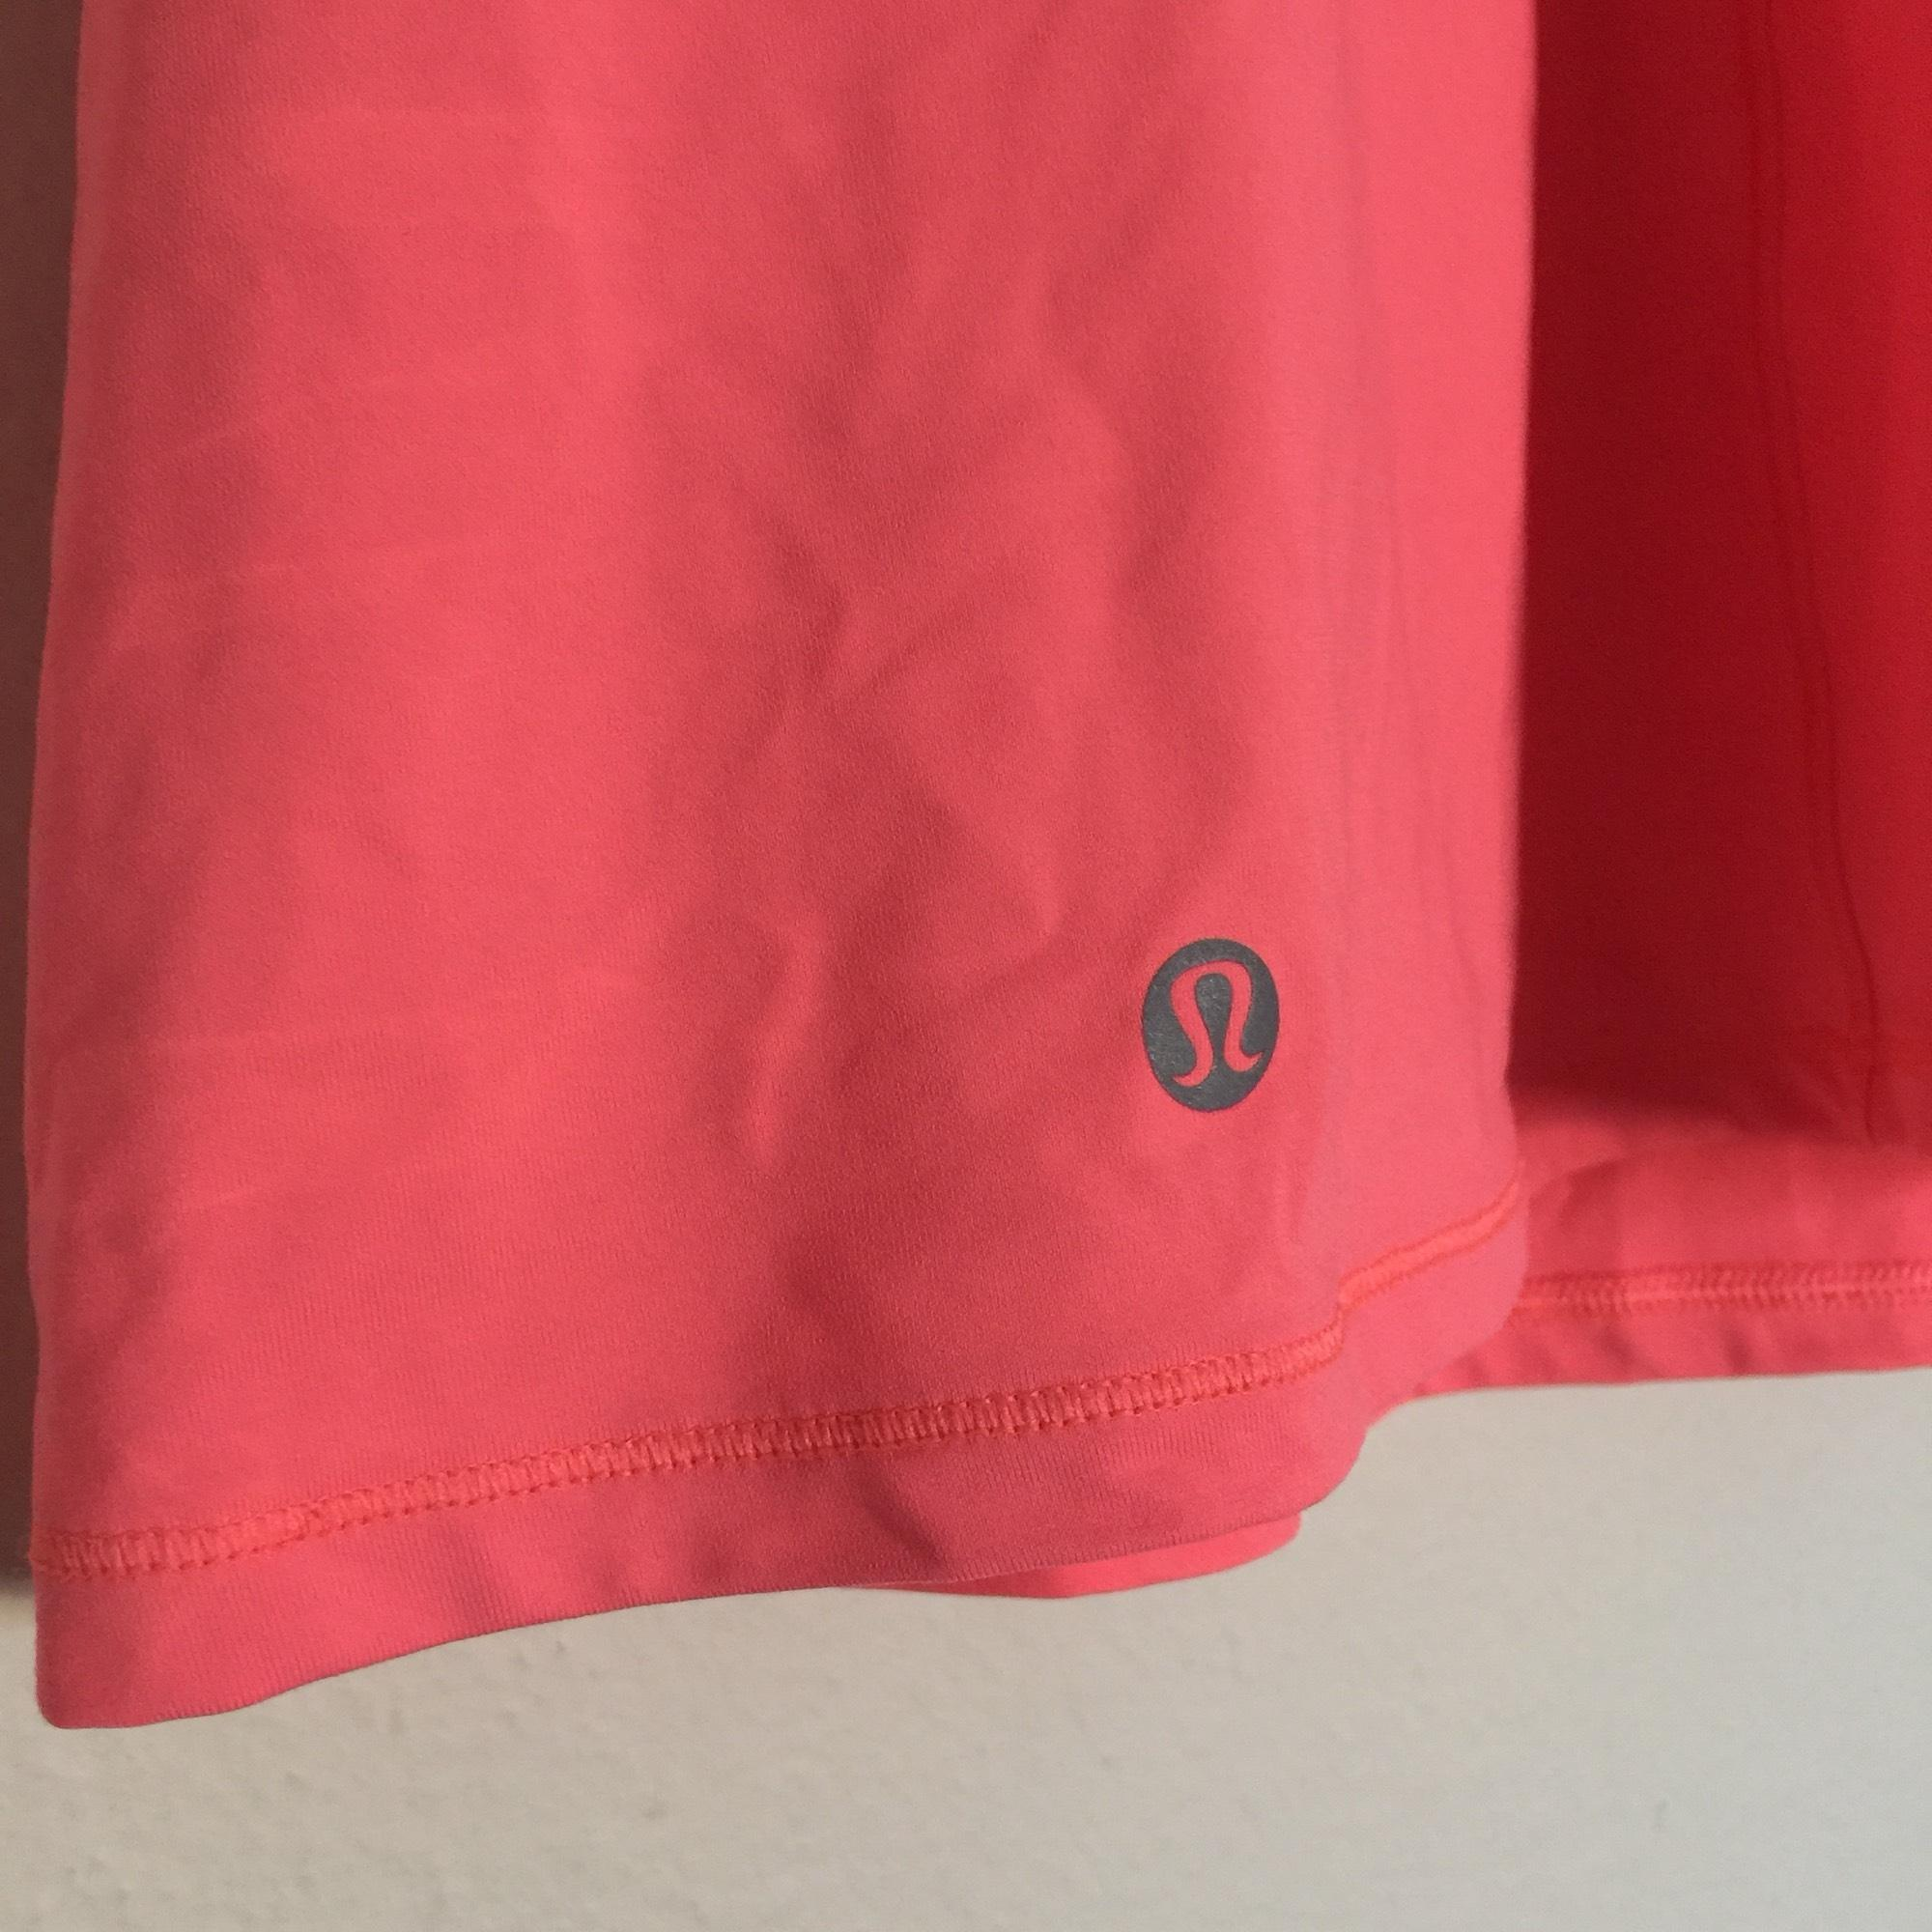 Lululemon Pink Coral Energy Tank Blouse Size 8 (M)